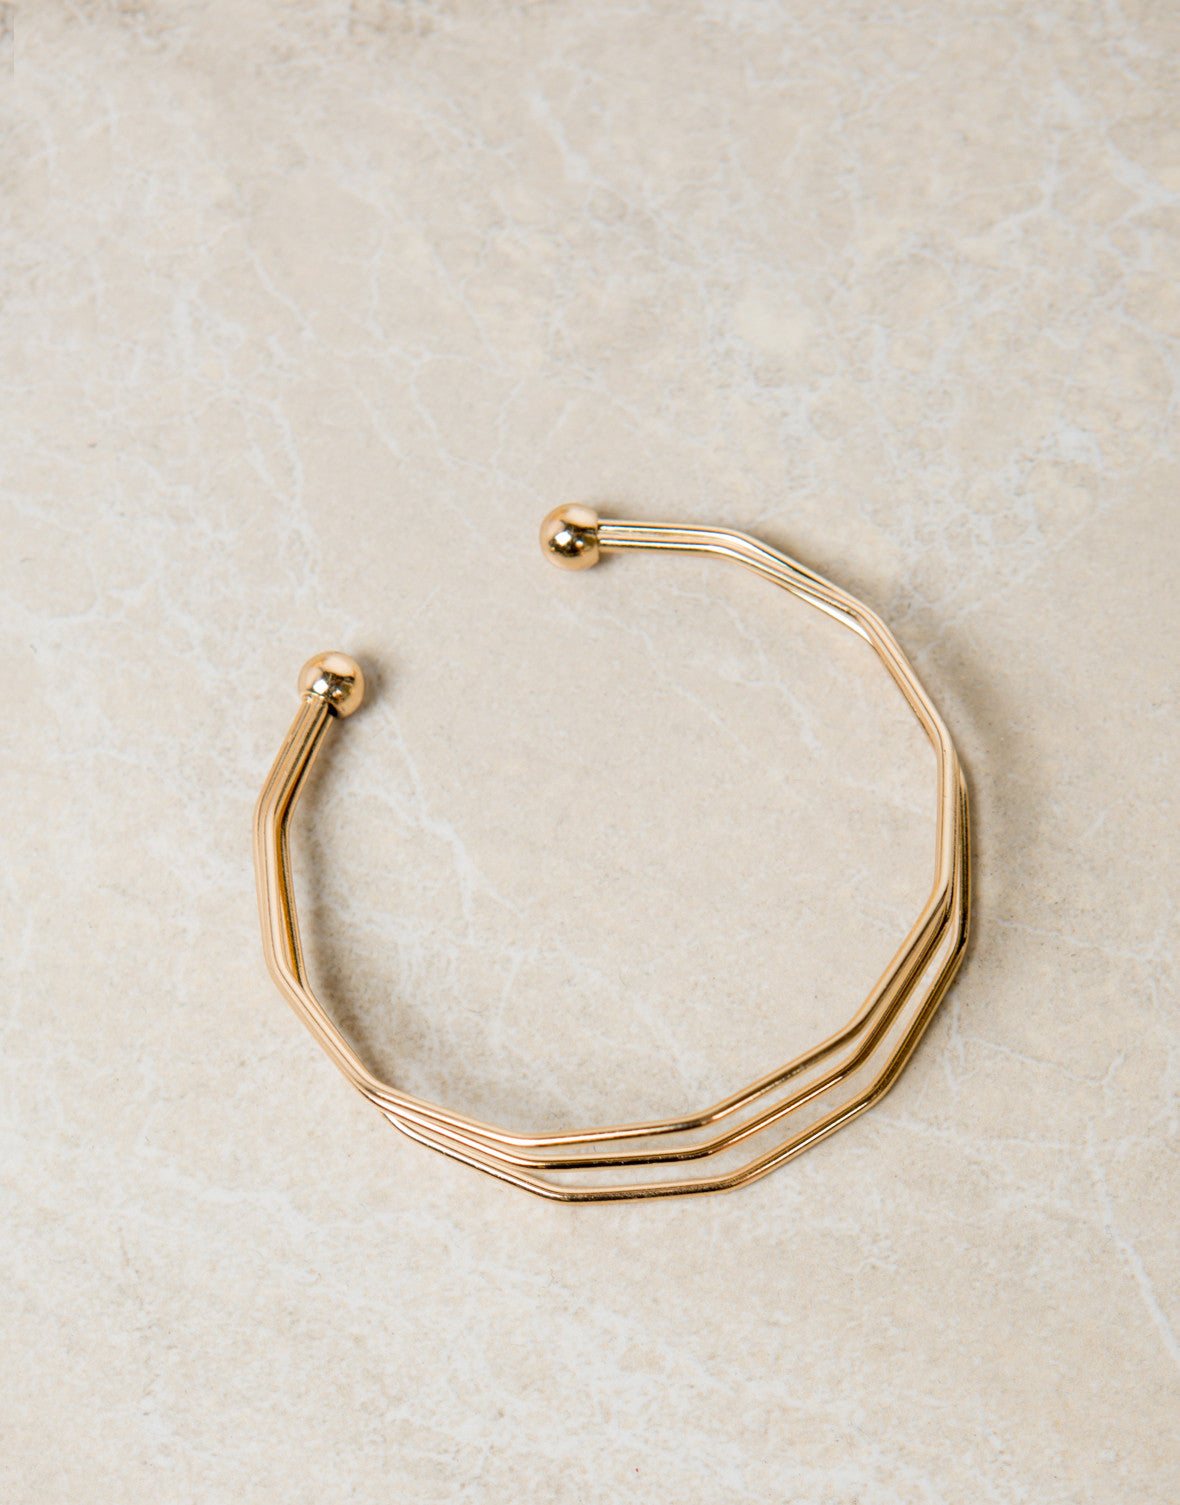 Triple Wired Bracelet Cuff